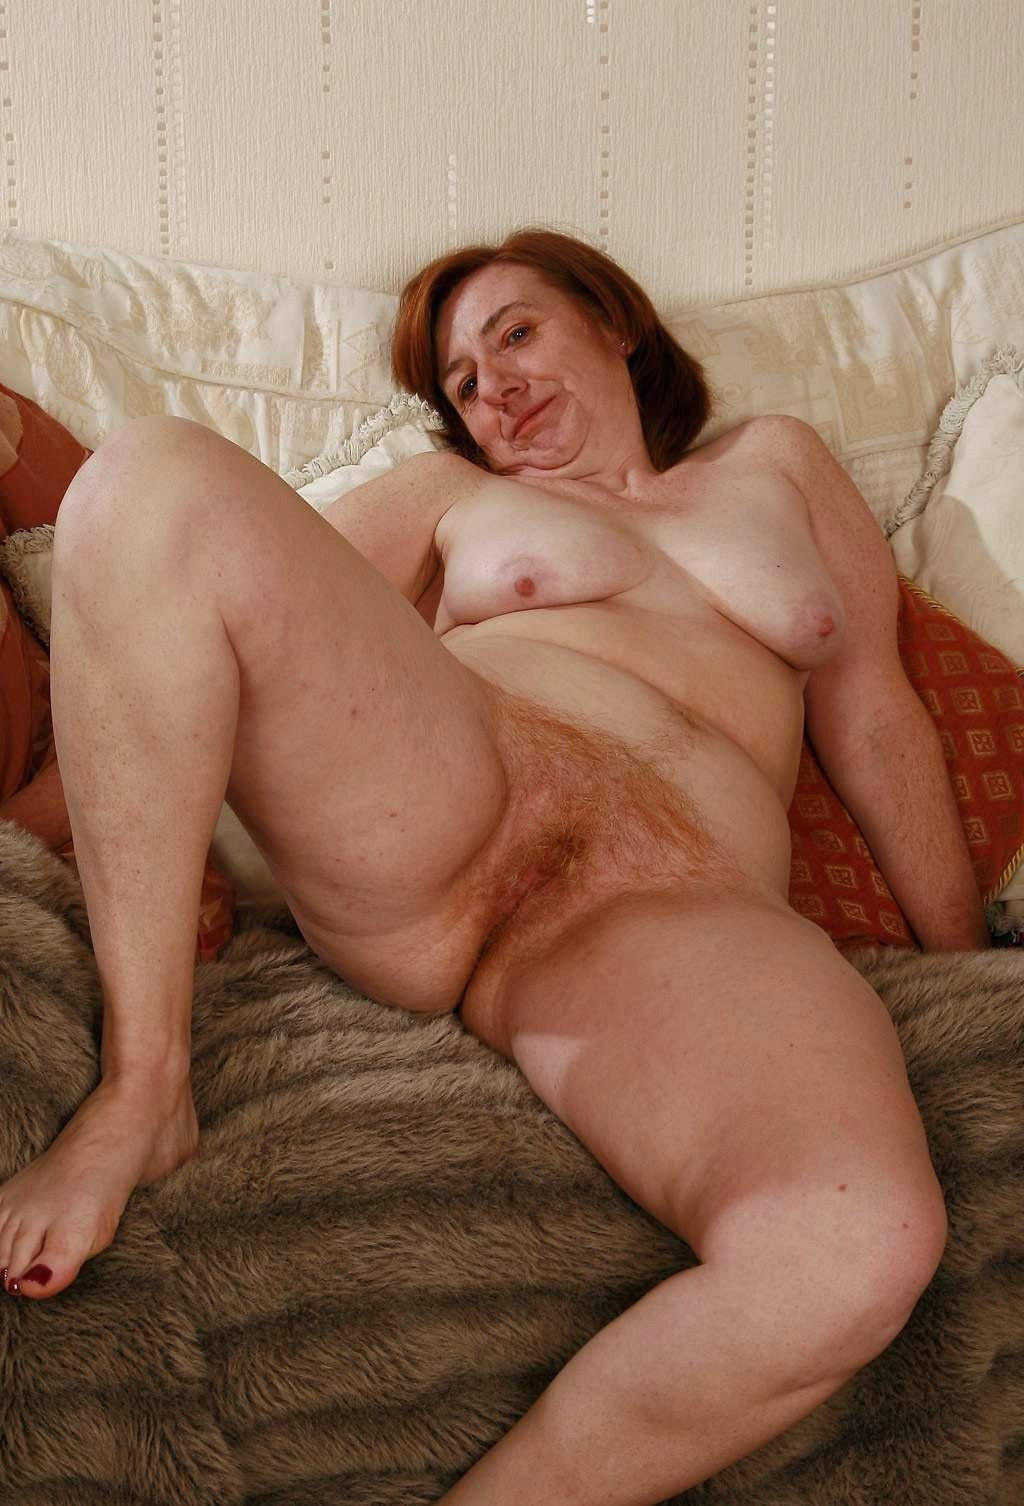 How like White hairy nude old woman sexy